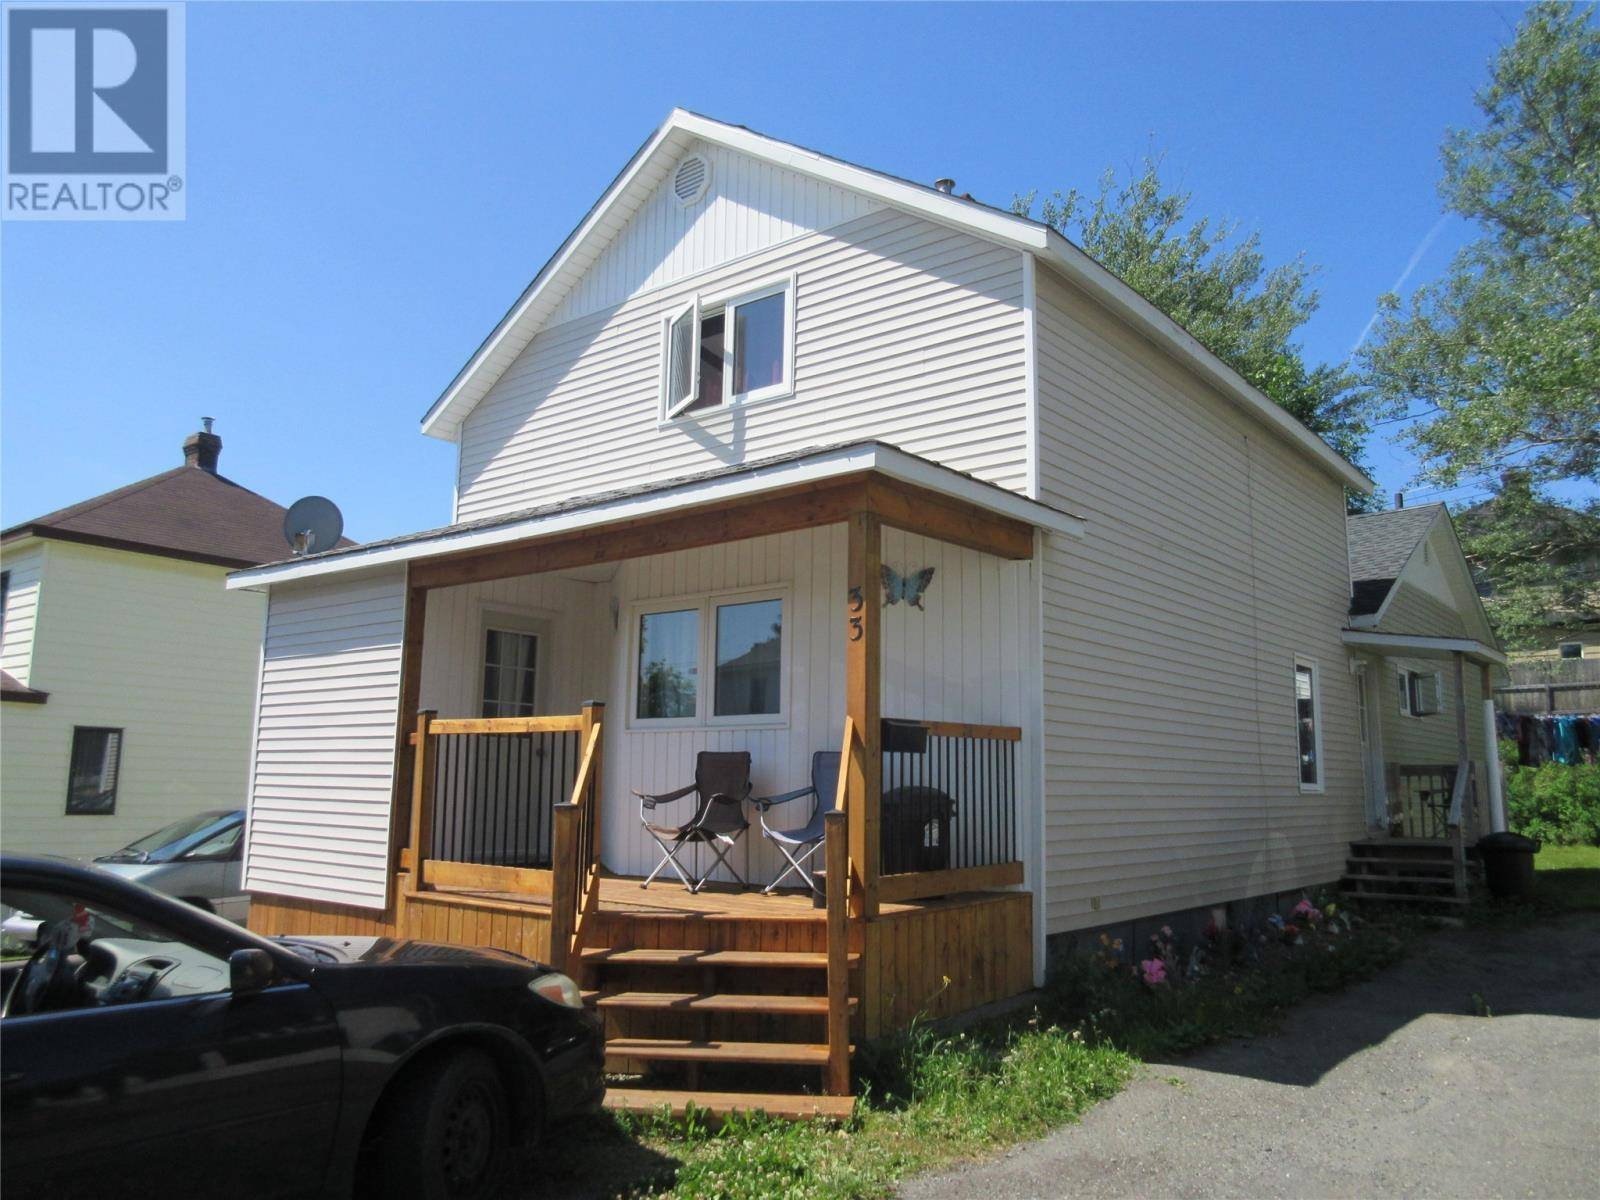 House for sale at 33 Junction Rd Grand Falls-windsor Newfoundland - MLS: 1200230